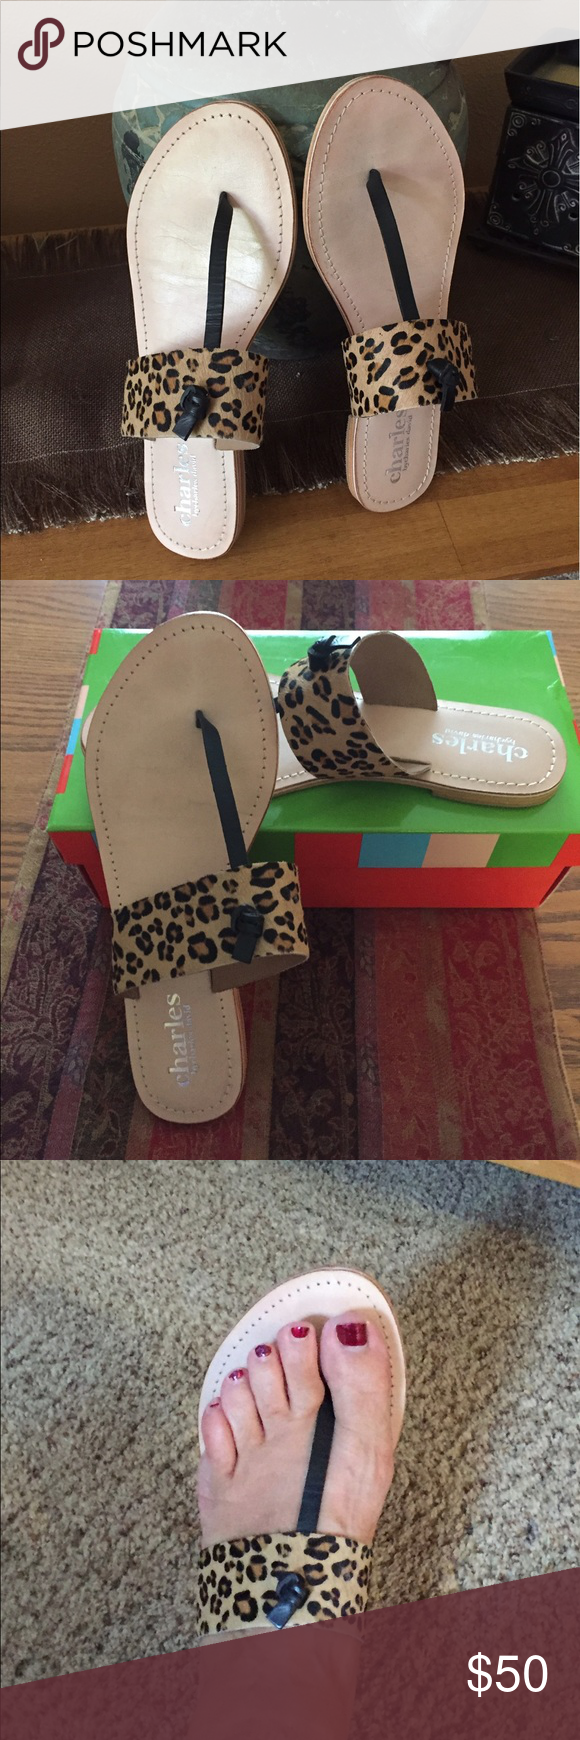 Charles by Charles David 'Vega' Sandals All leather Charles by Charles David 'Vega' flip flop sandals. Leopard/Black. Like new in box, only worn around my house. Charles David Shoes Sandals